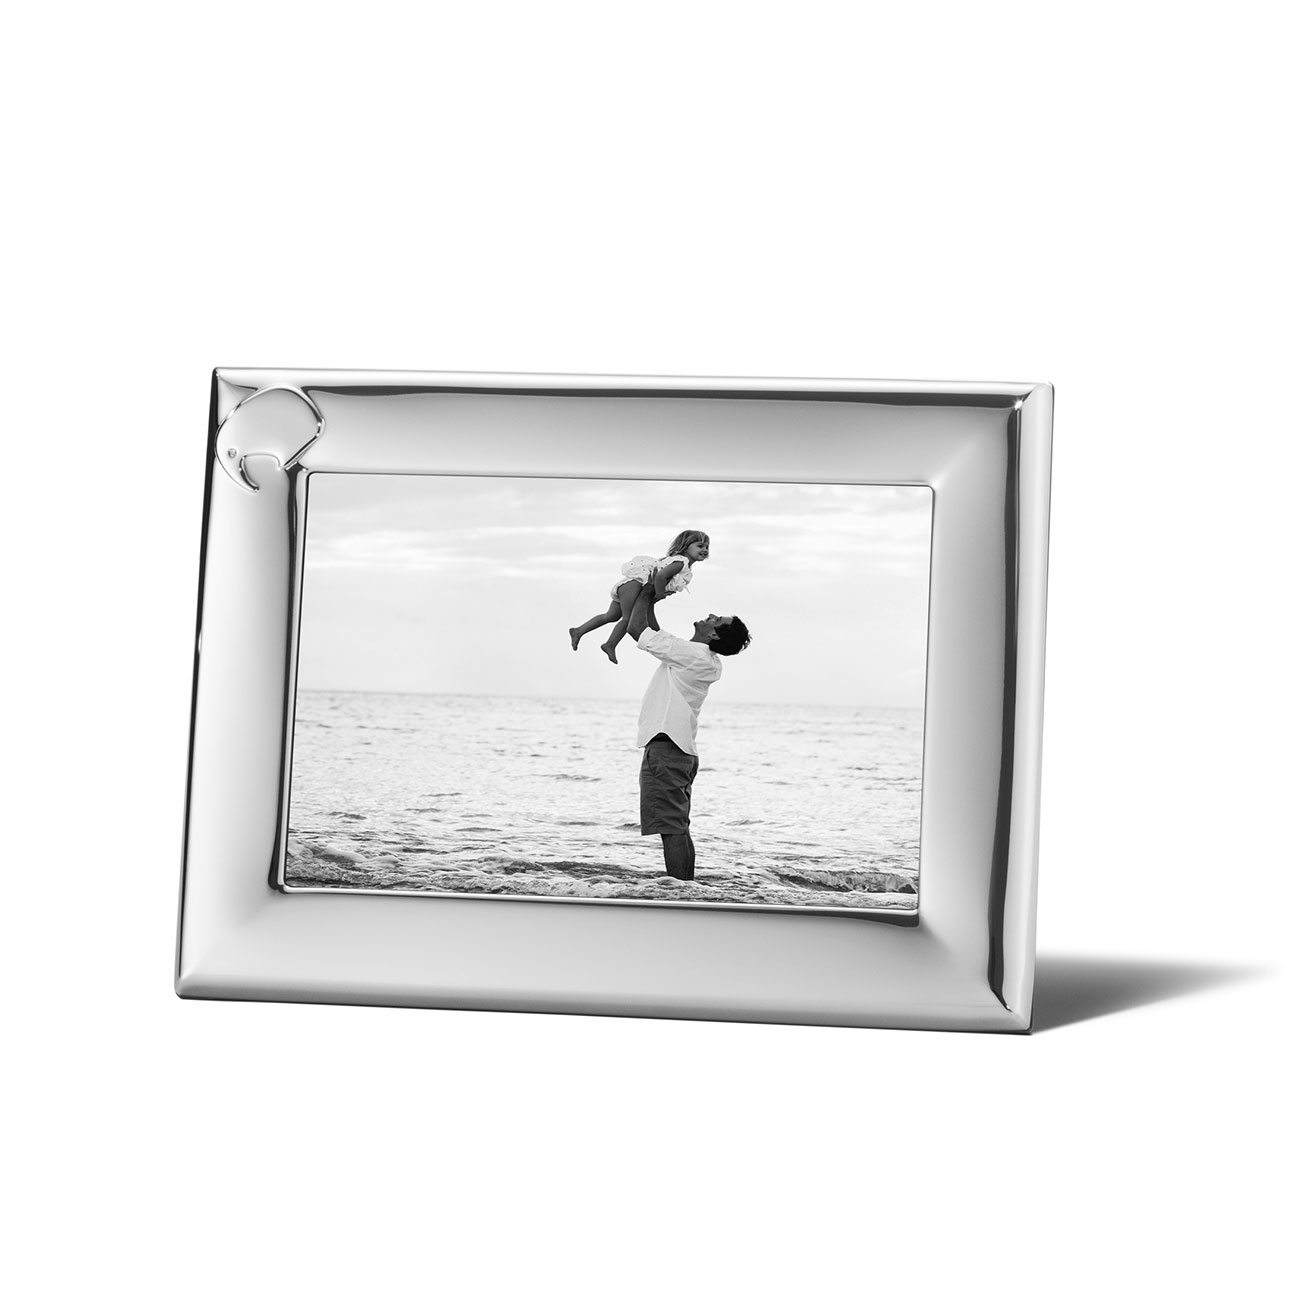 Georg Jensen Stainless Steel Elephant Picture Frame, 4 x 6